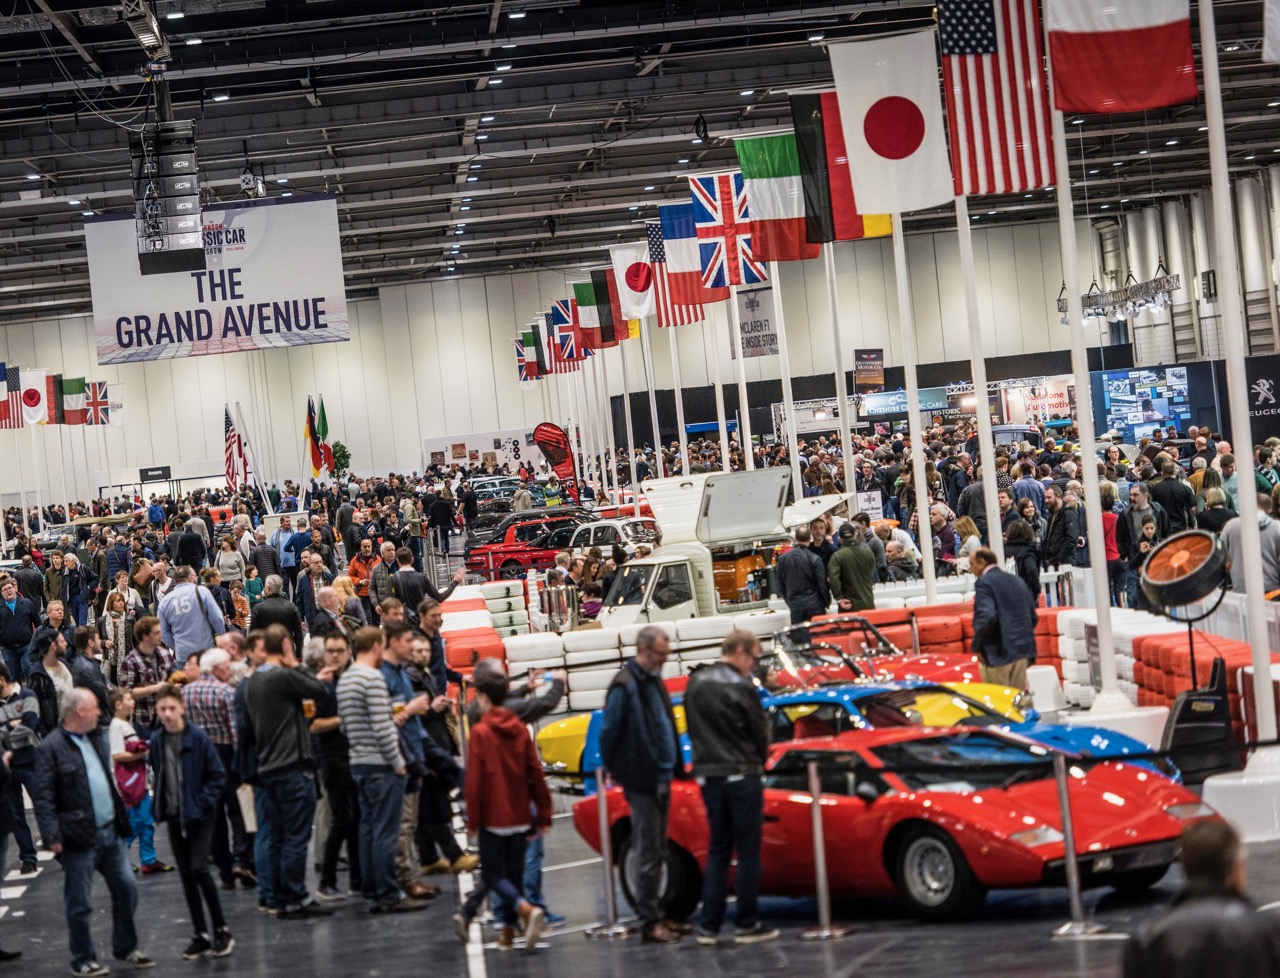 London Classic Car Show draws a crowd to see the cars, and adds a racing exhibition for 2017 | Show photos